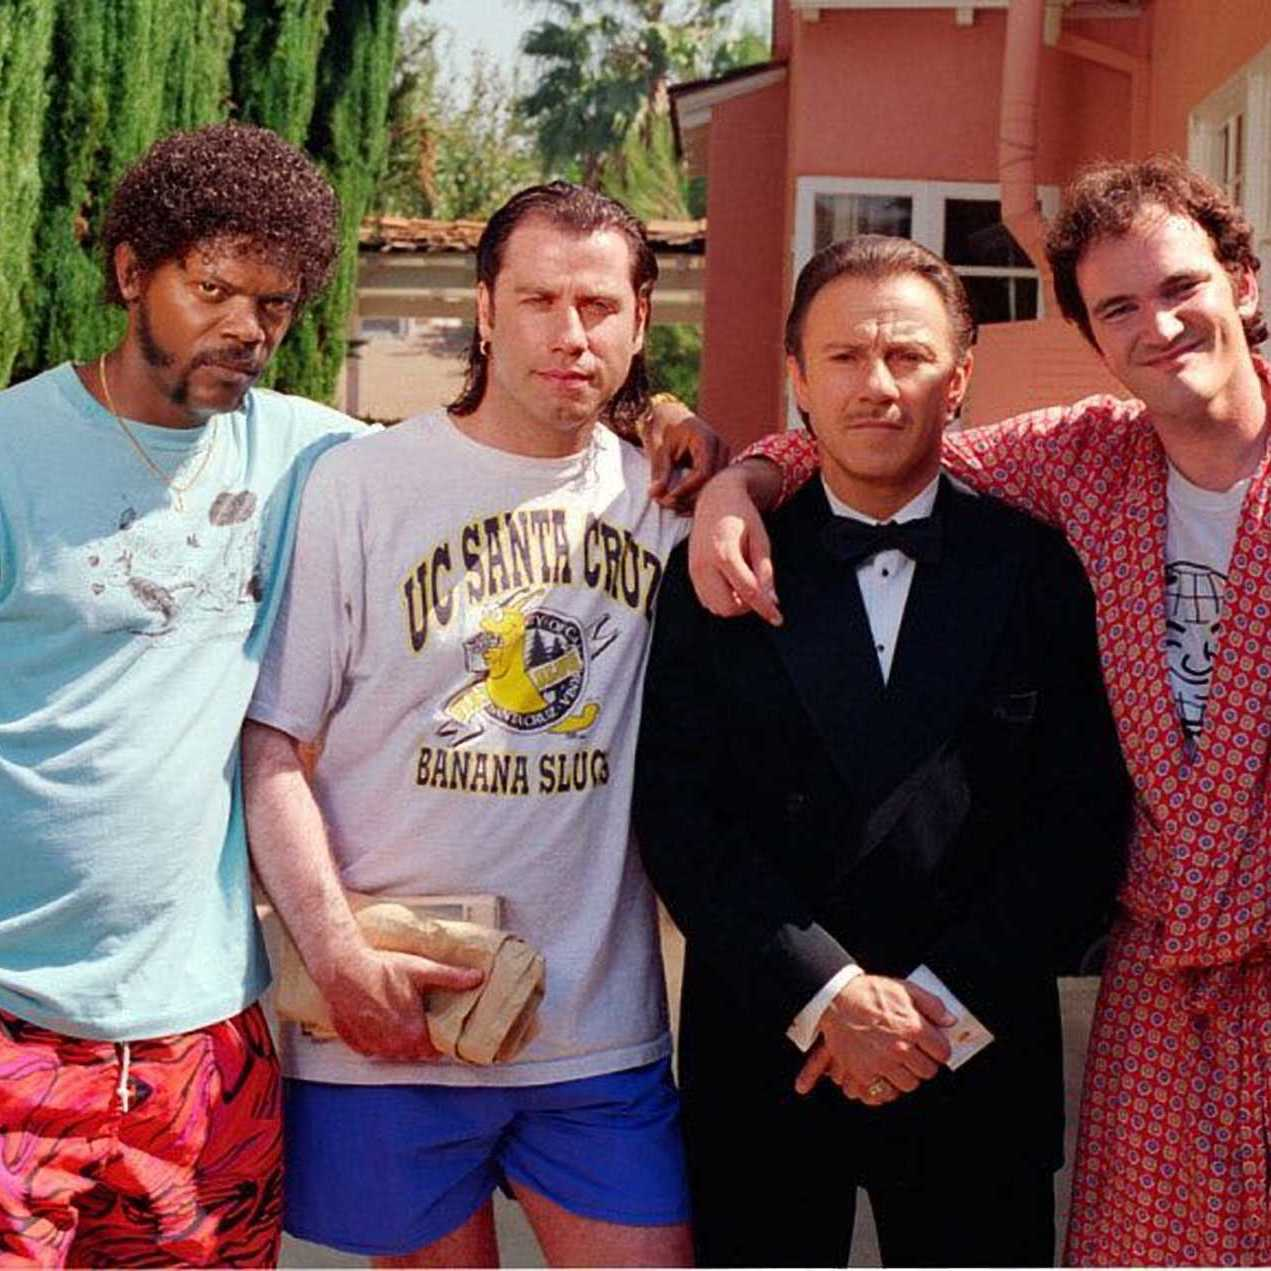 jyo2j0s2uec01 25 Things You Never Knew About Pulp Fiction